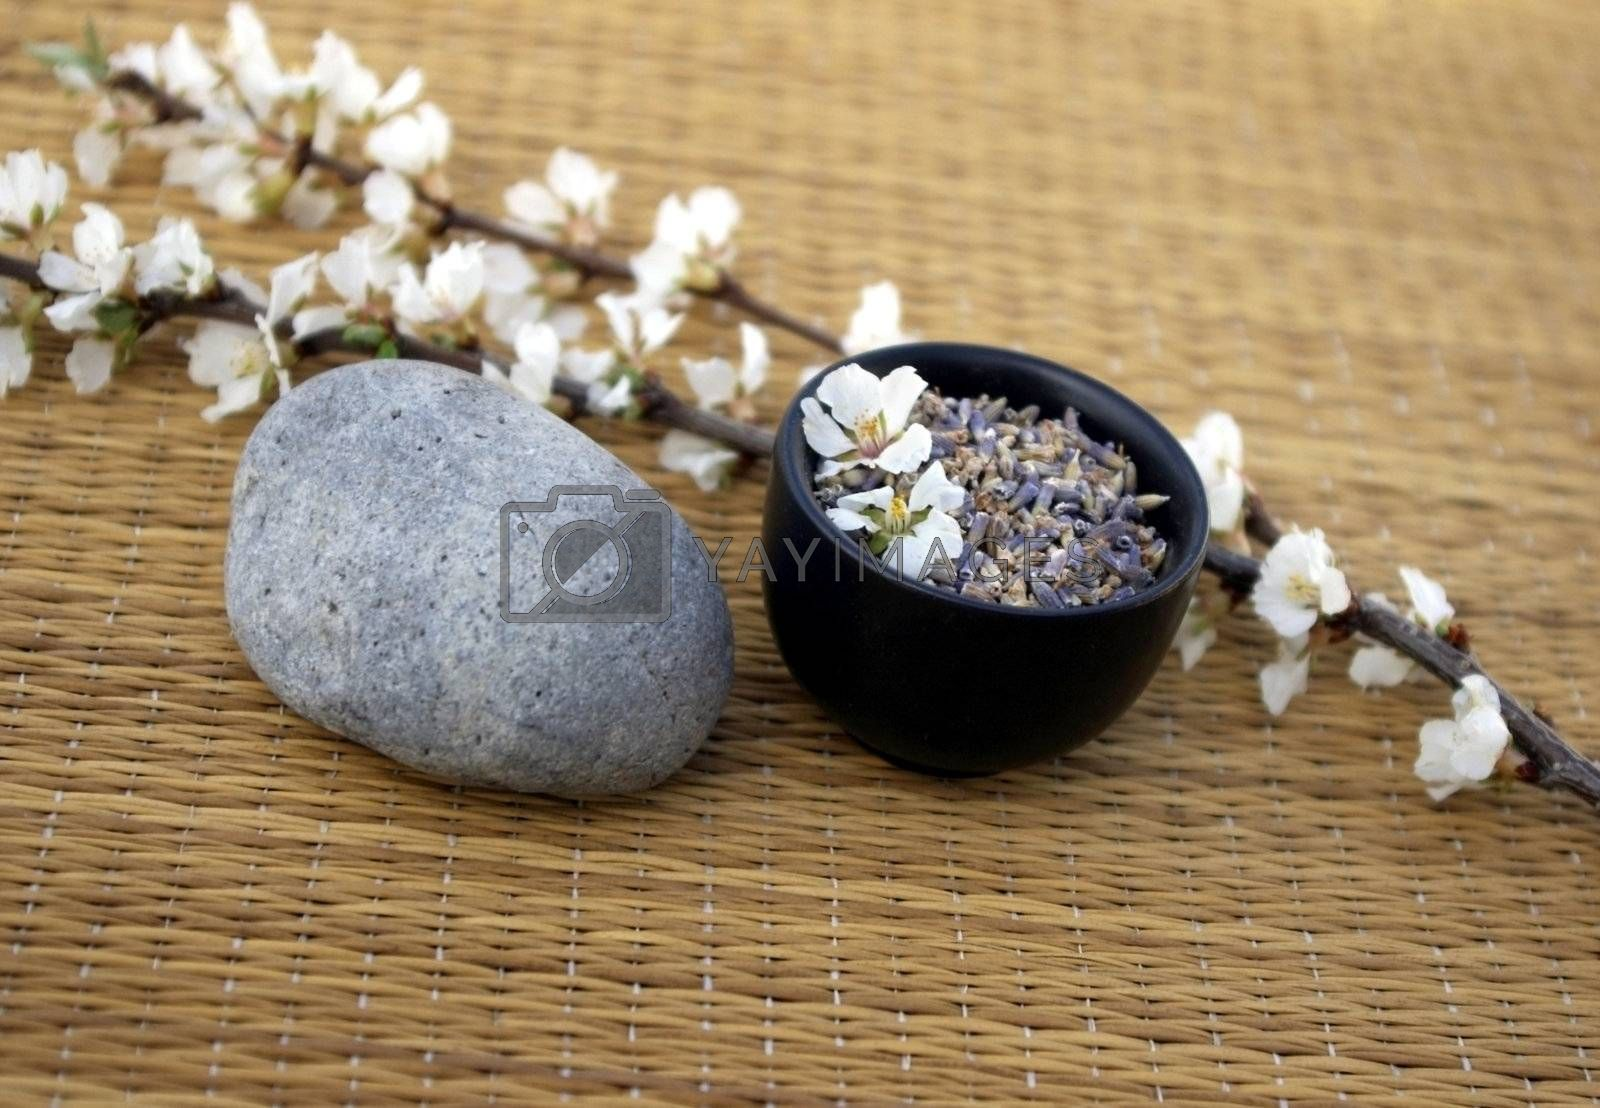 Spa setting with lavender buds, smooth stone, and flowering branch.